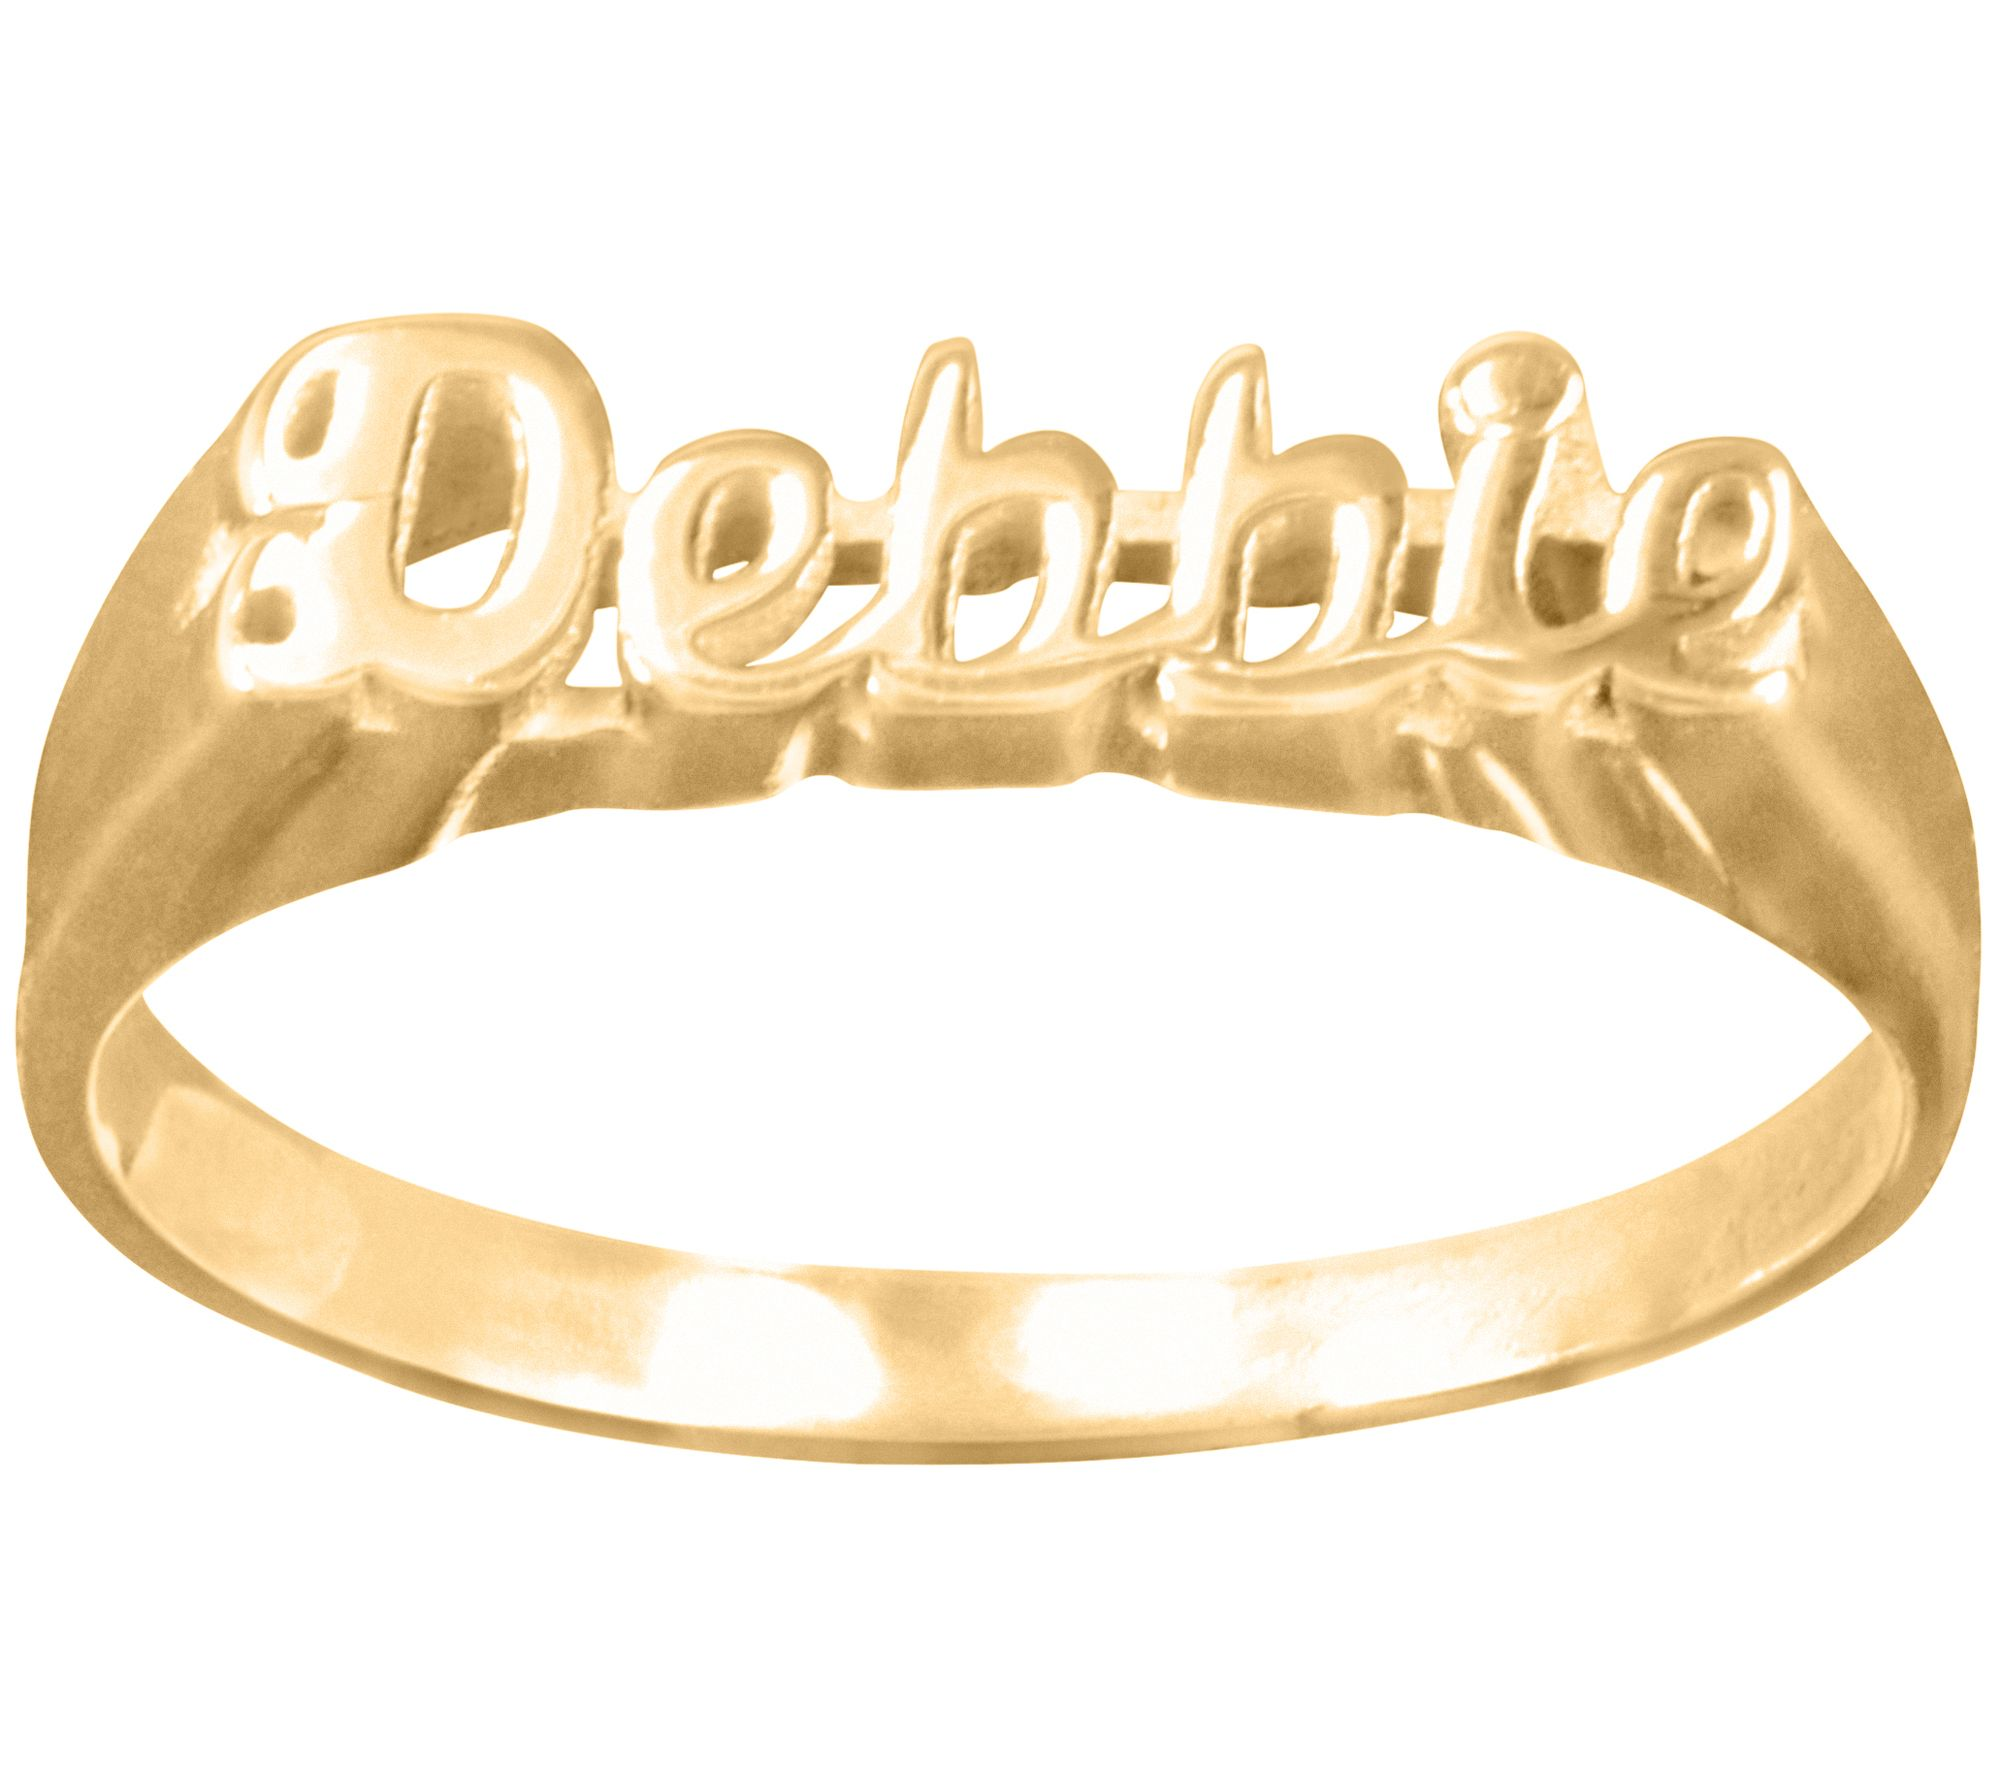 14K Gold-Plated Sterling Personalized Name Ring